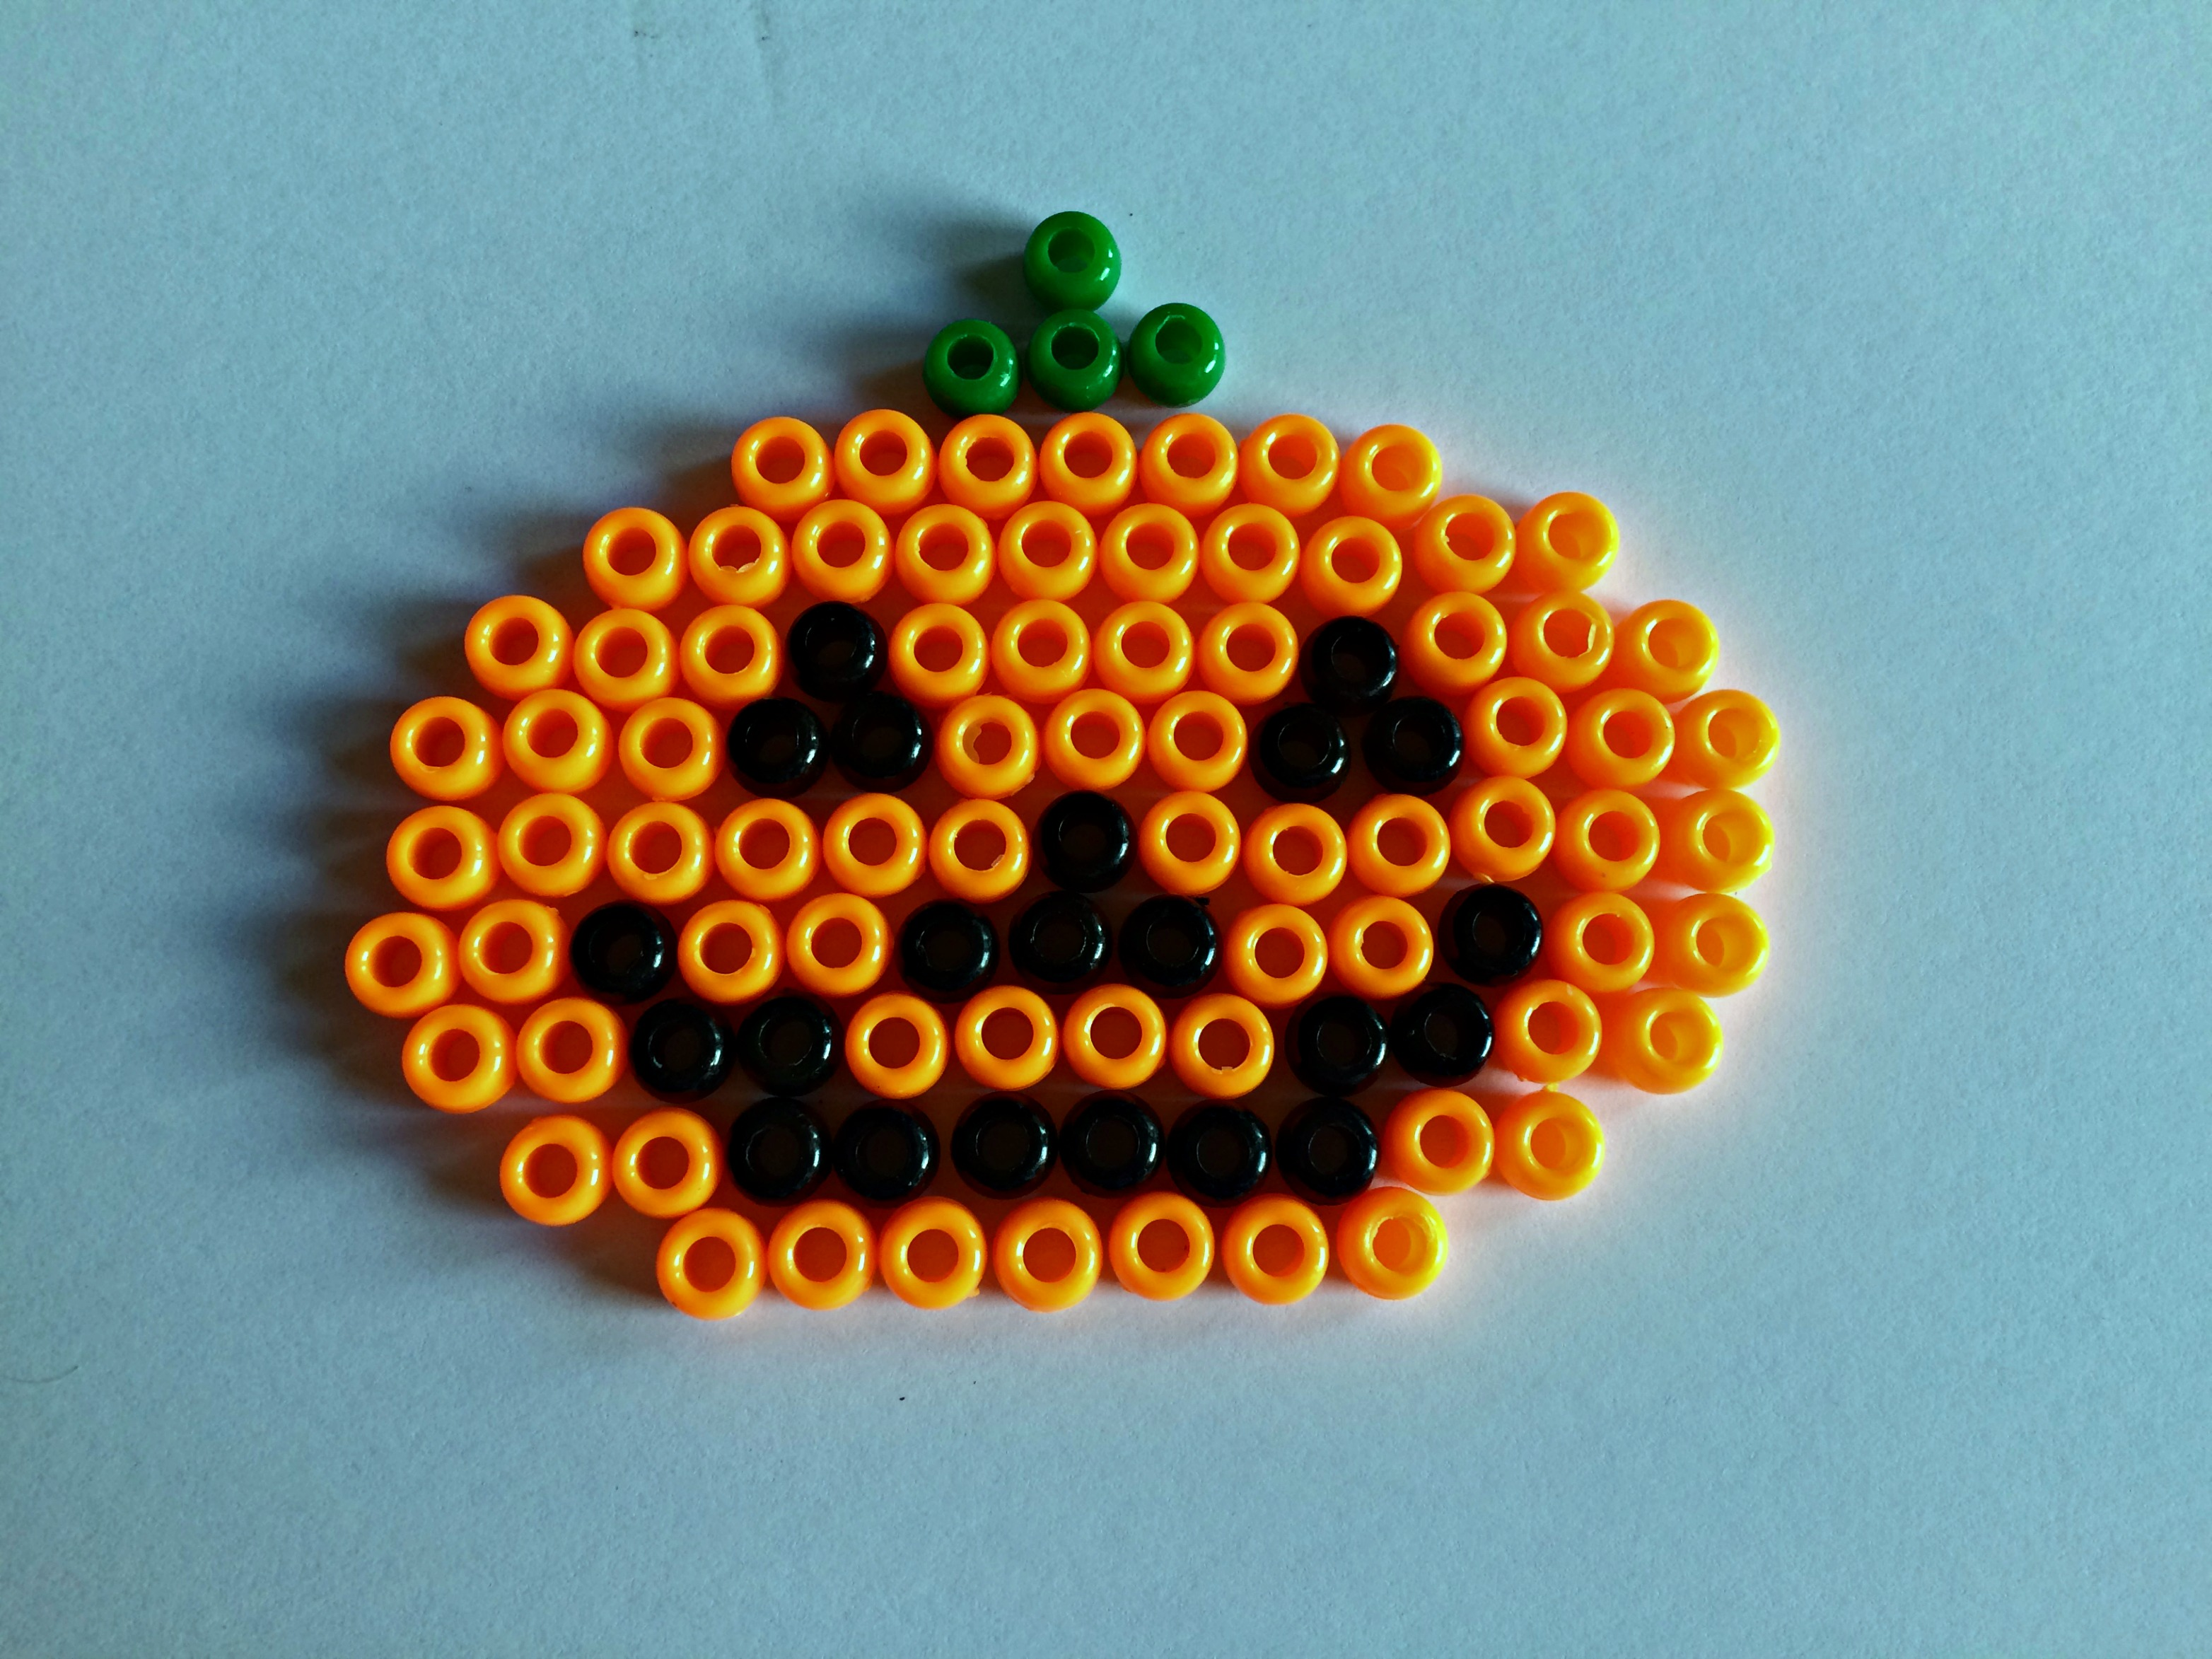 Pony beads laid out for a jack-o'-lantern beadie buddie design.